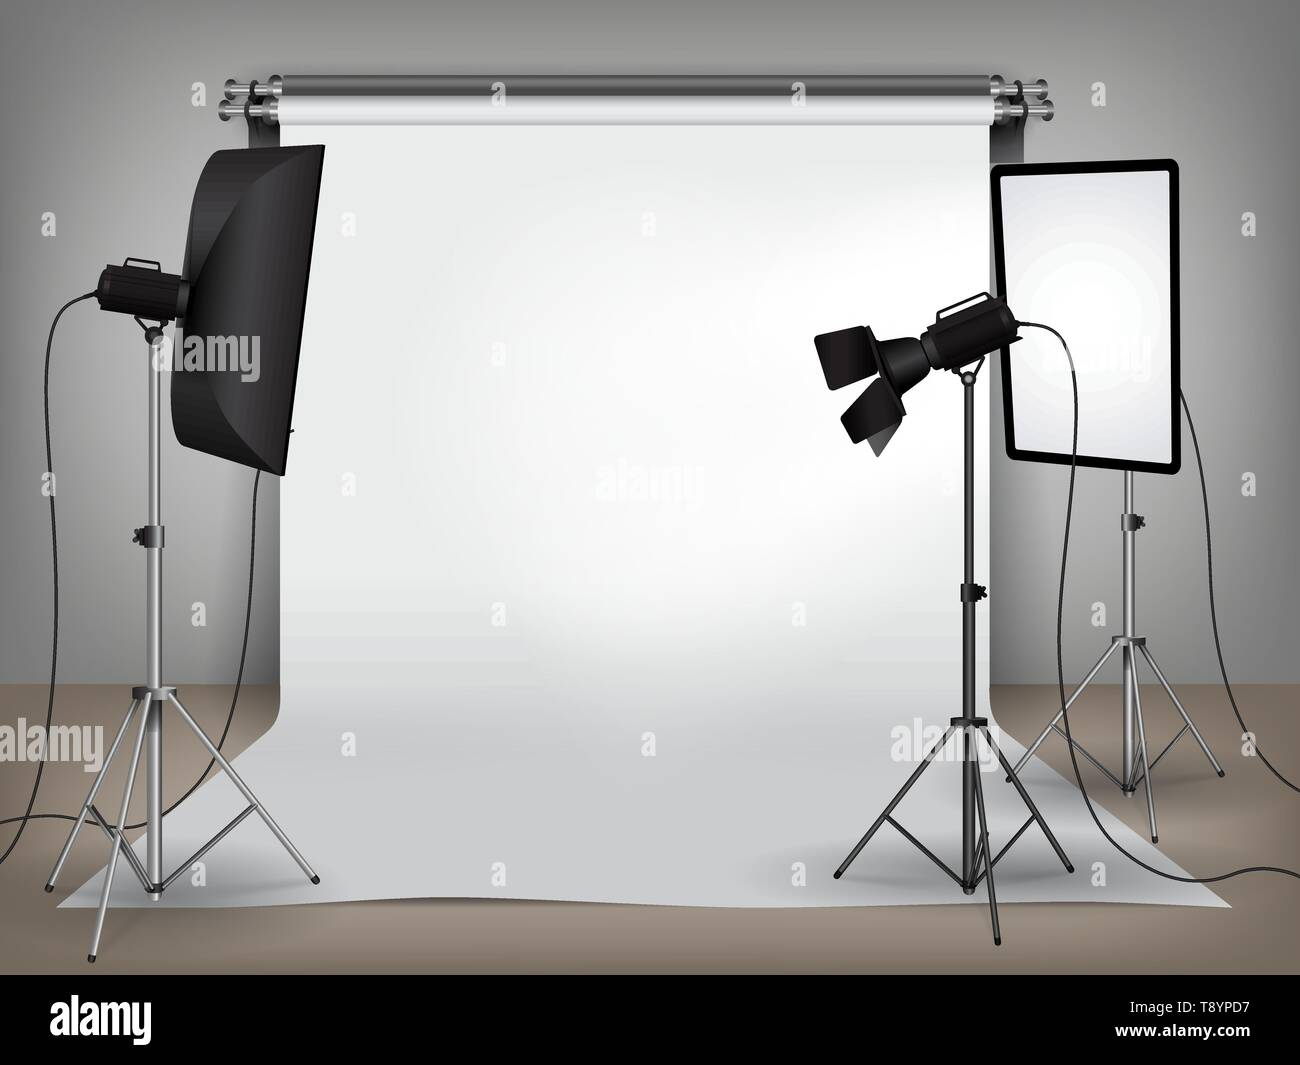 Realistic photo studio set up with lighting equipment and white backdrop - Stock Vector